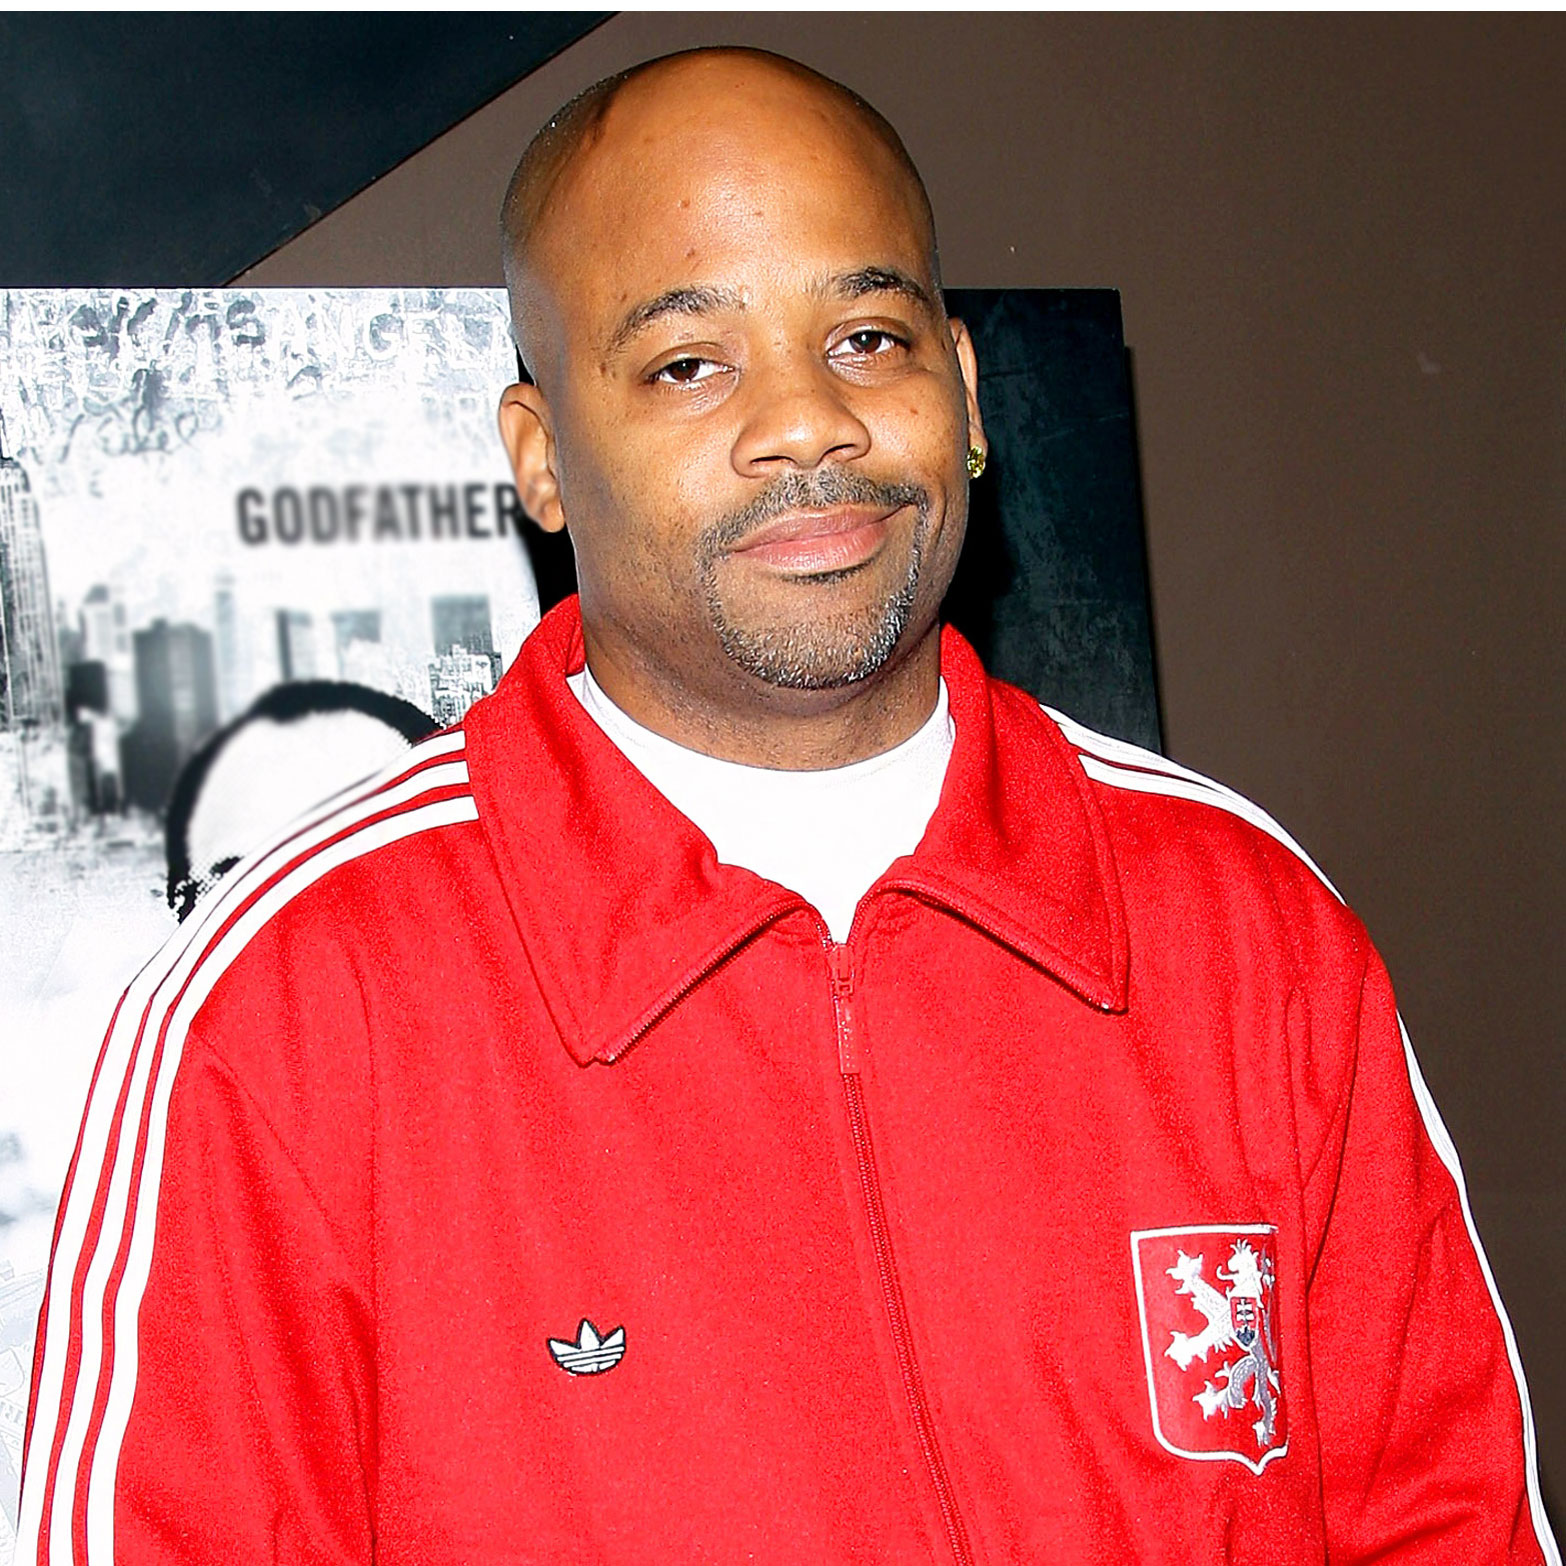 Damon Dash wiki bio, affair, married, wife, children, divorce, age